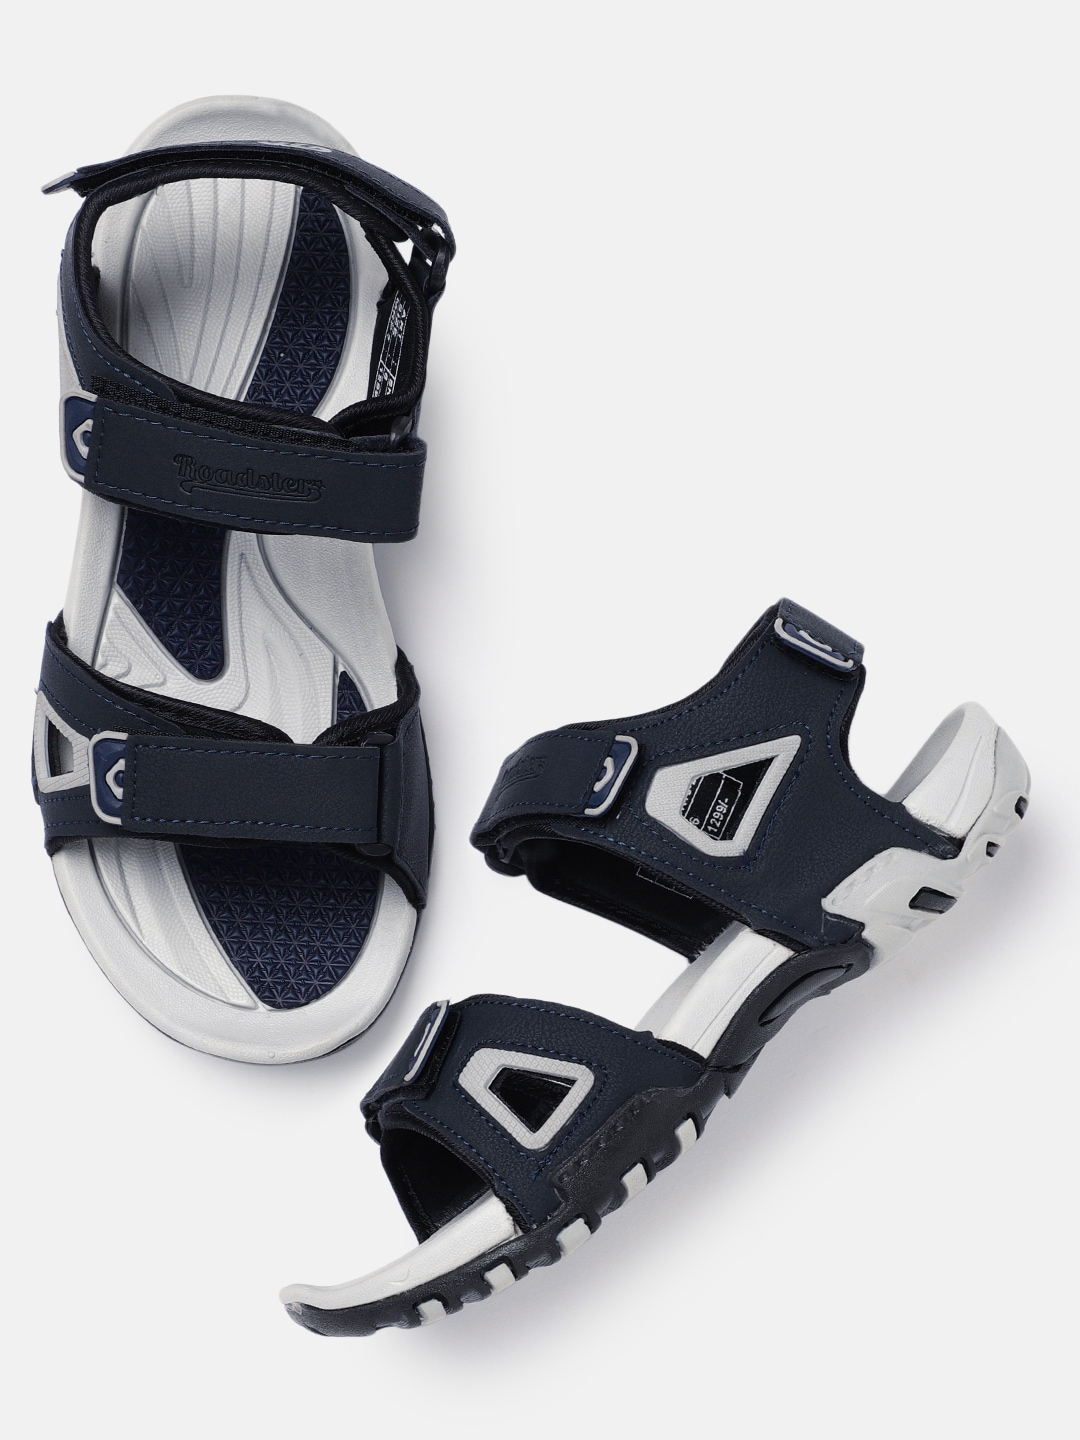 91721ed2787b Mens Footwears Sports Sandals - Buy Mens Footwears Sports Sandals online in  India